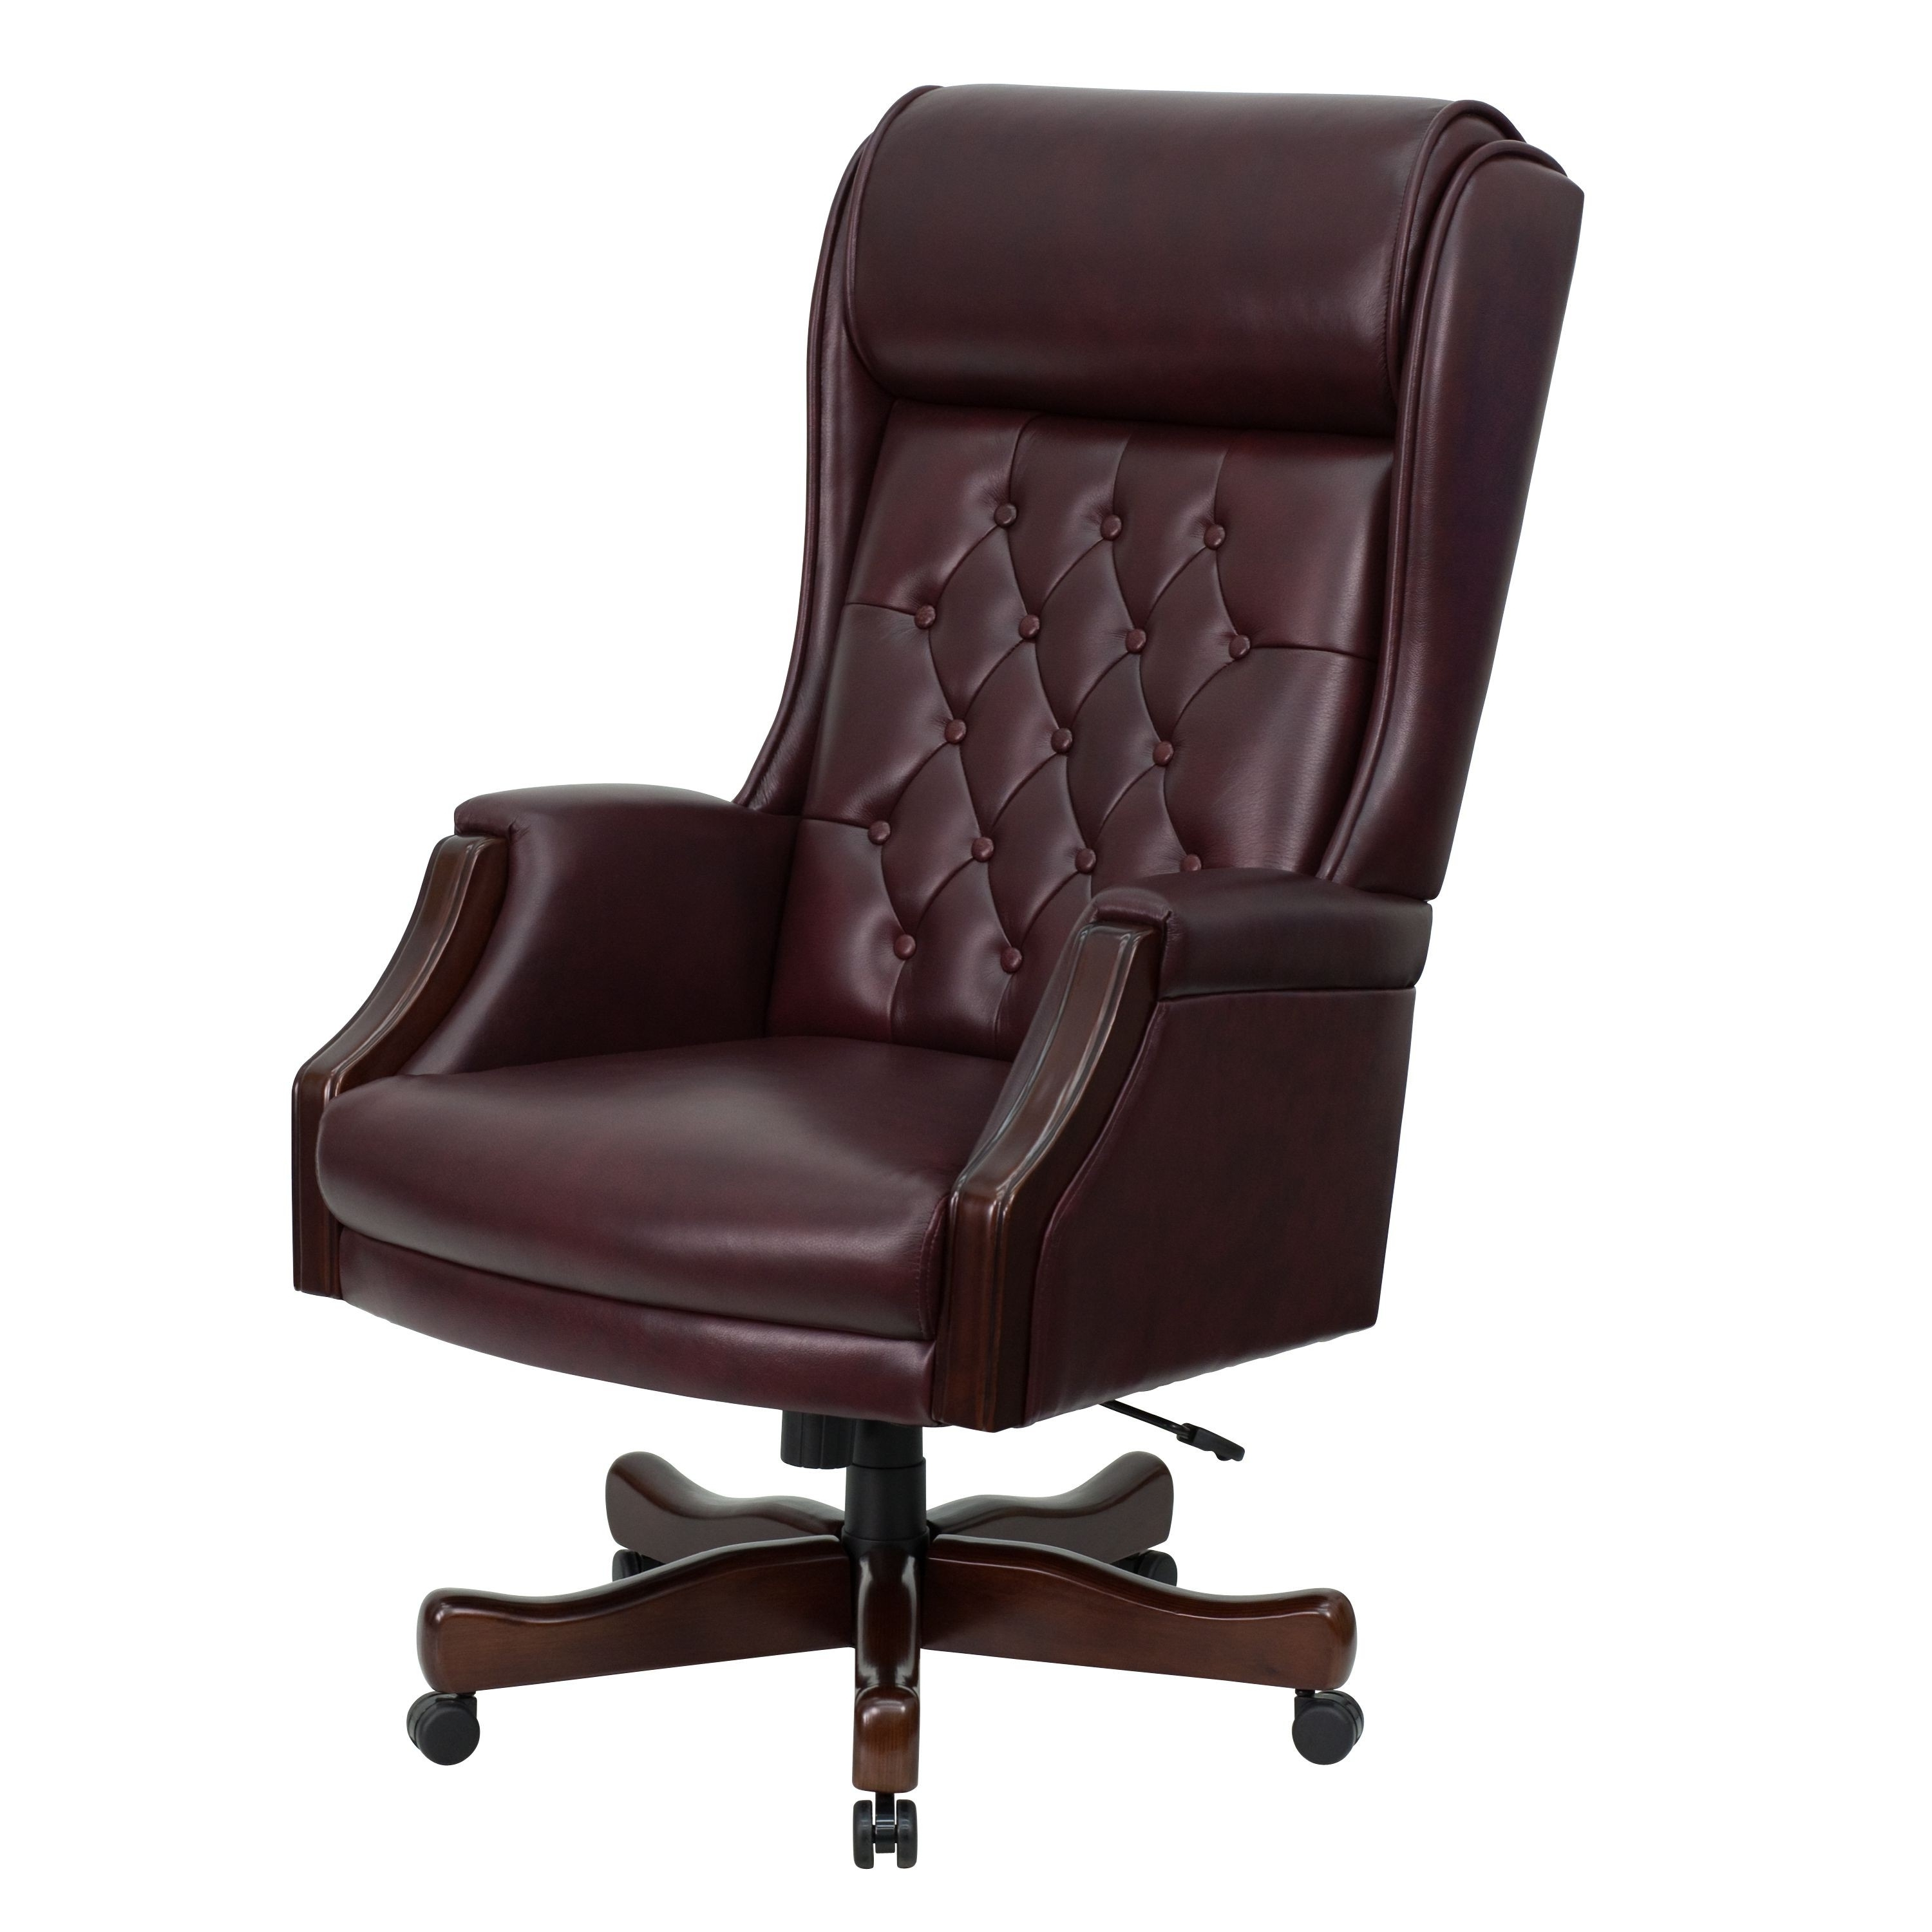 Flash Furniture Kc C696Tg Gg Tufted High Back Executive Leather Pertaining To Best And Newest High End Executive Office Chairs (View 8 of 20)